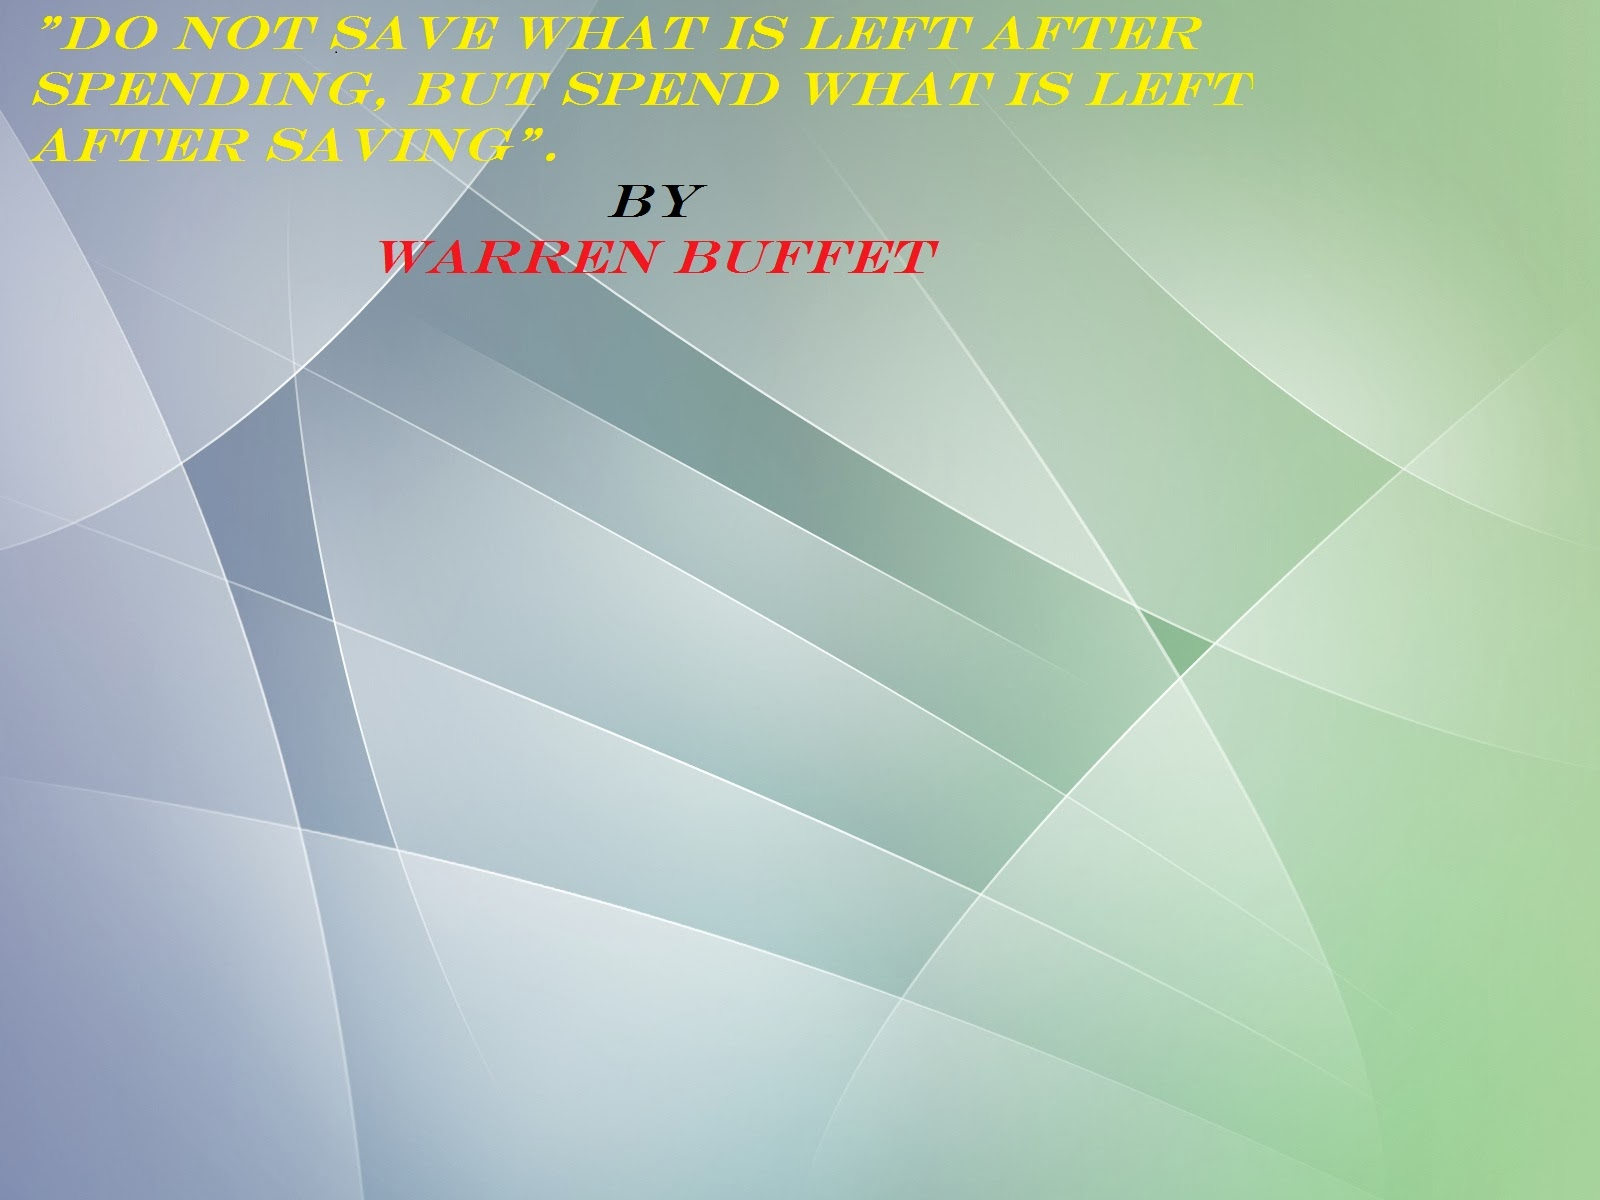 Warren Buffet Quotes Wallpapers